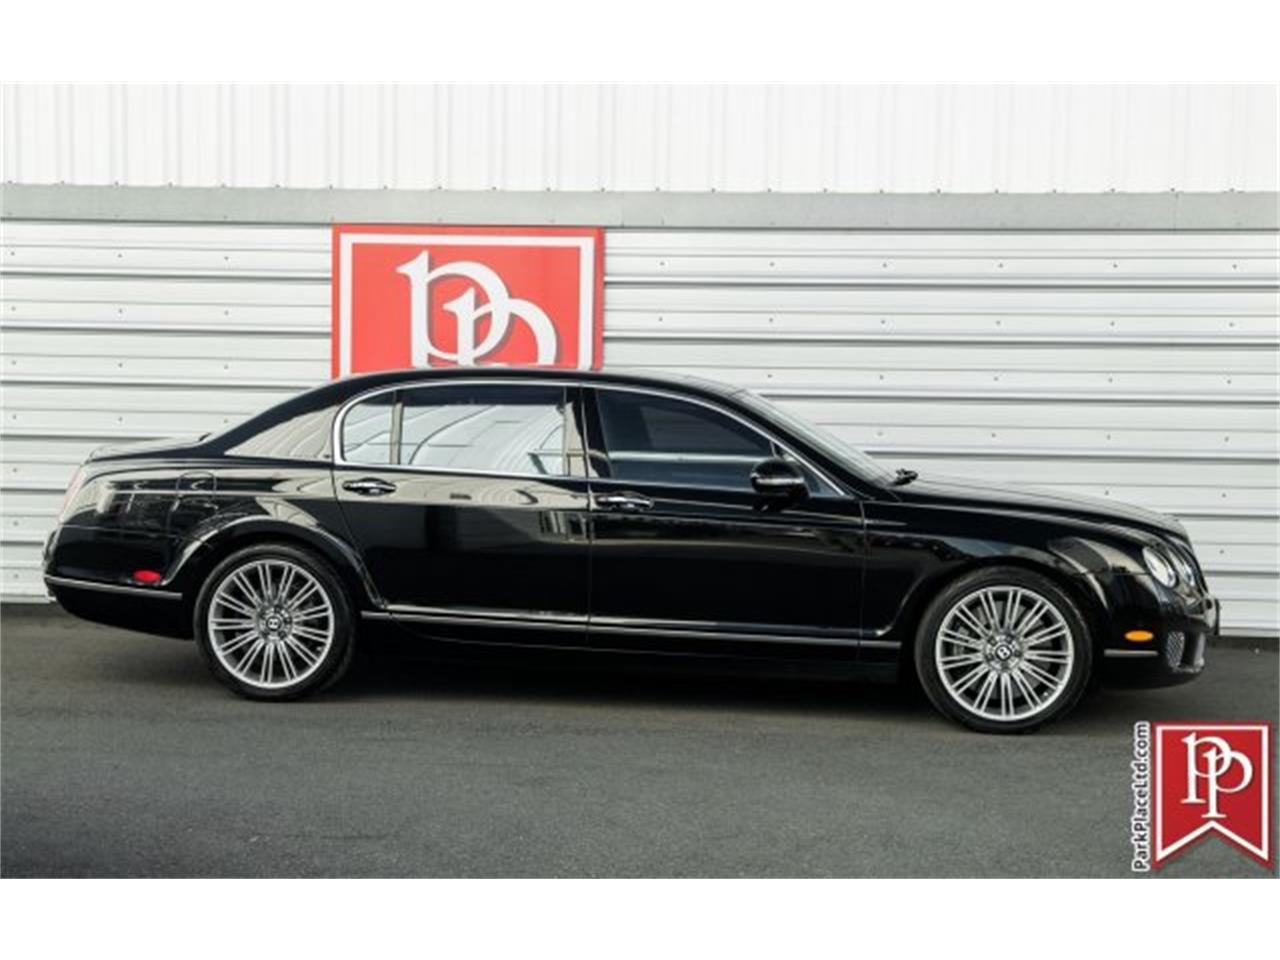 Large Picture of 2010 Bentley Continental Flying Spur located in Bellevue Washington - $59,950.00 Offered by Park Place Ltd - PSB8